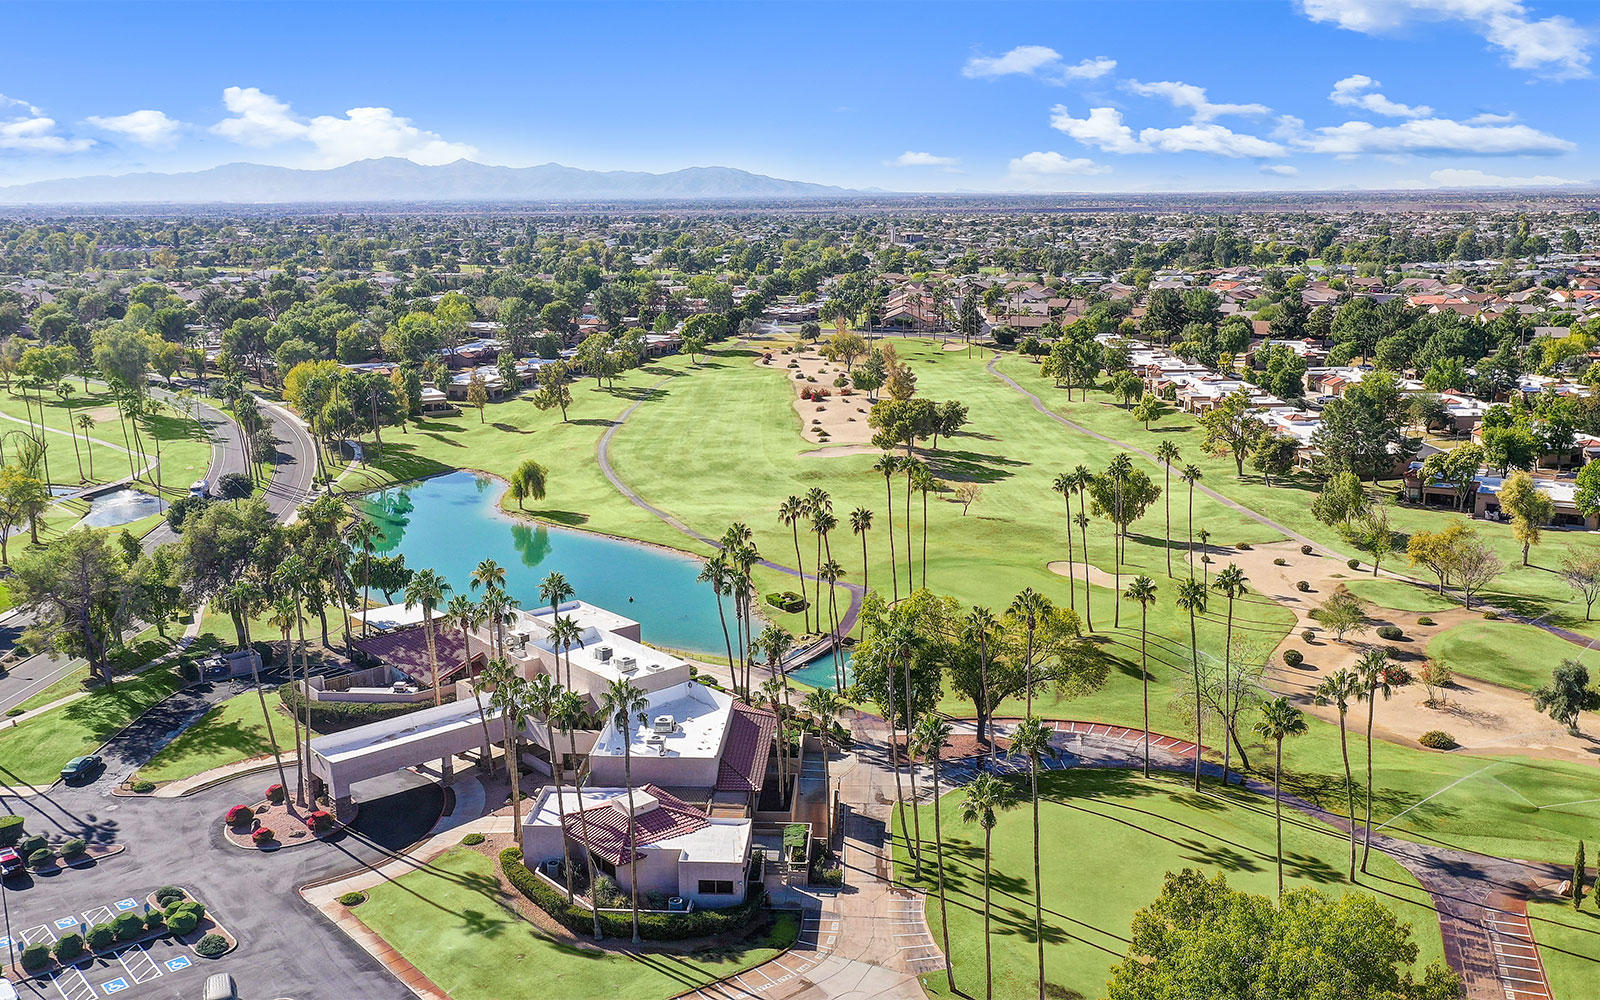 Aerial view of the golf course at the Westbrook Village Golf Club in Peoria, Arizona